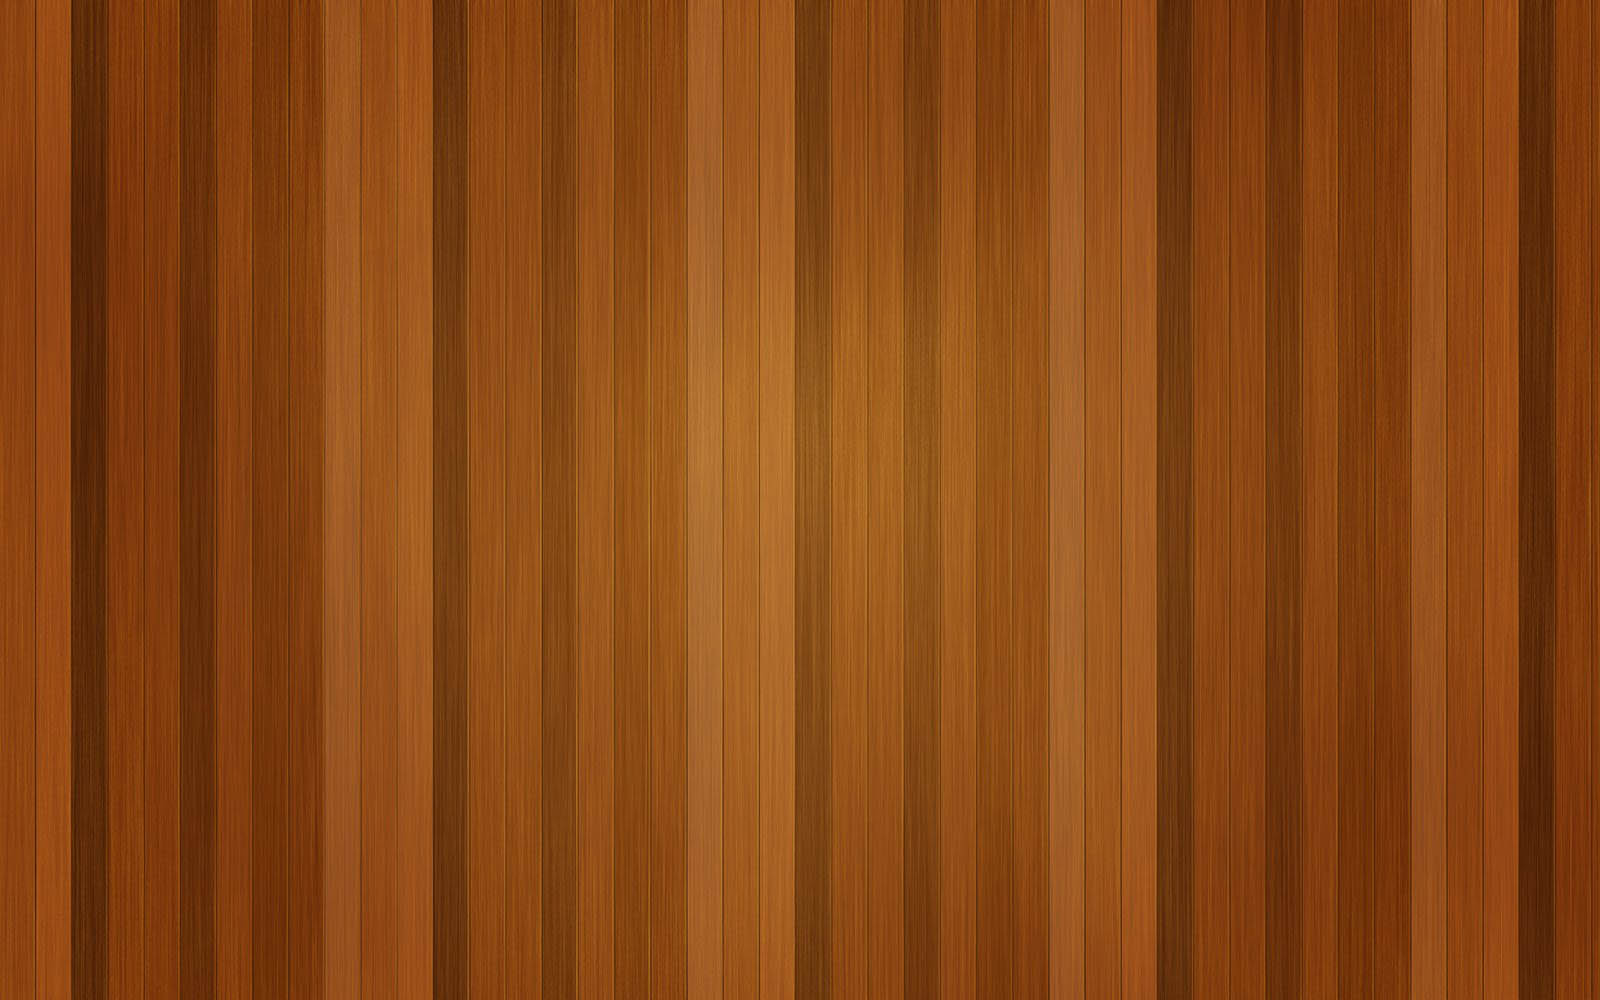 Wallpapers wood wallpapers for Wood wallpaper for walls